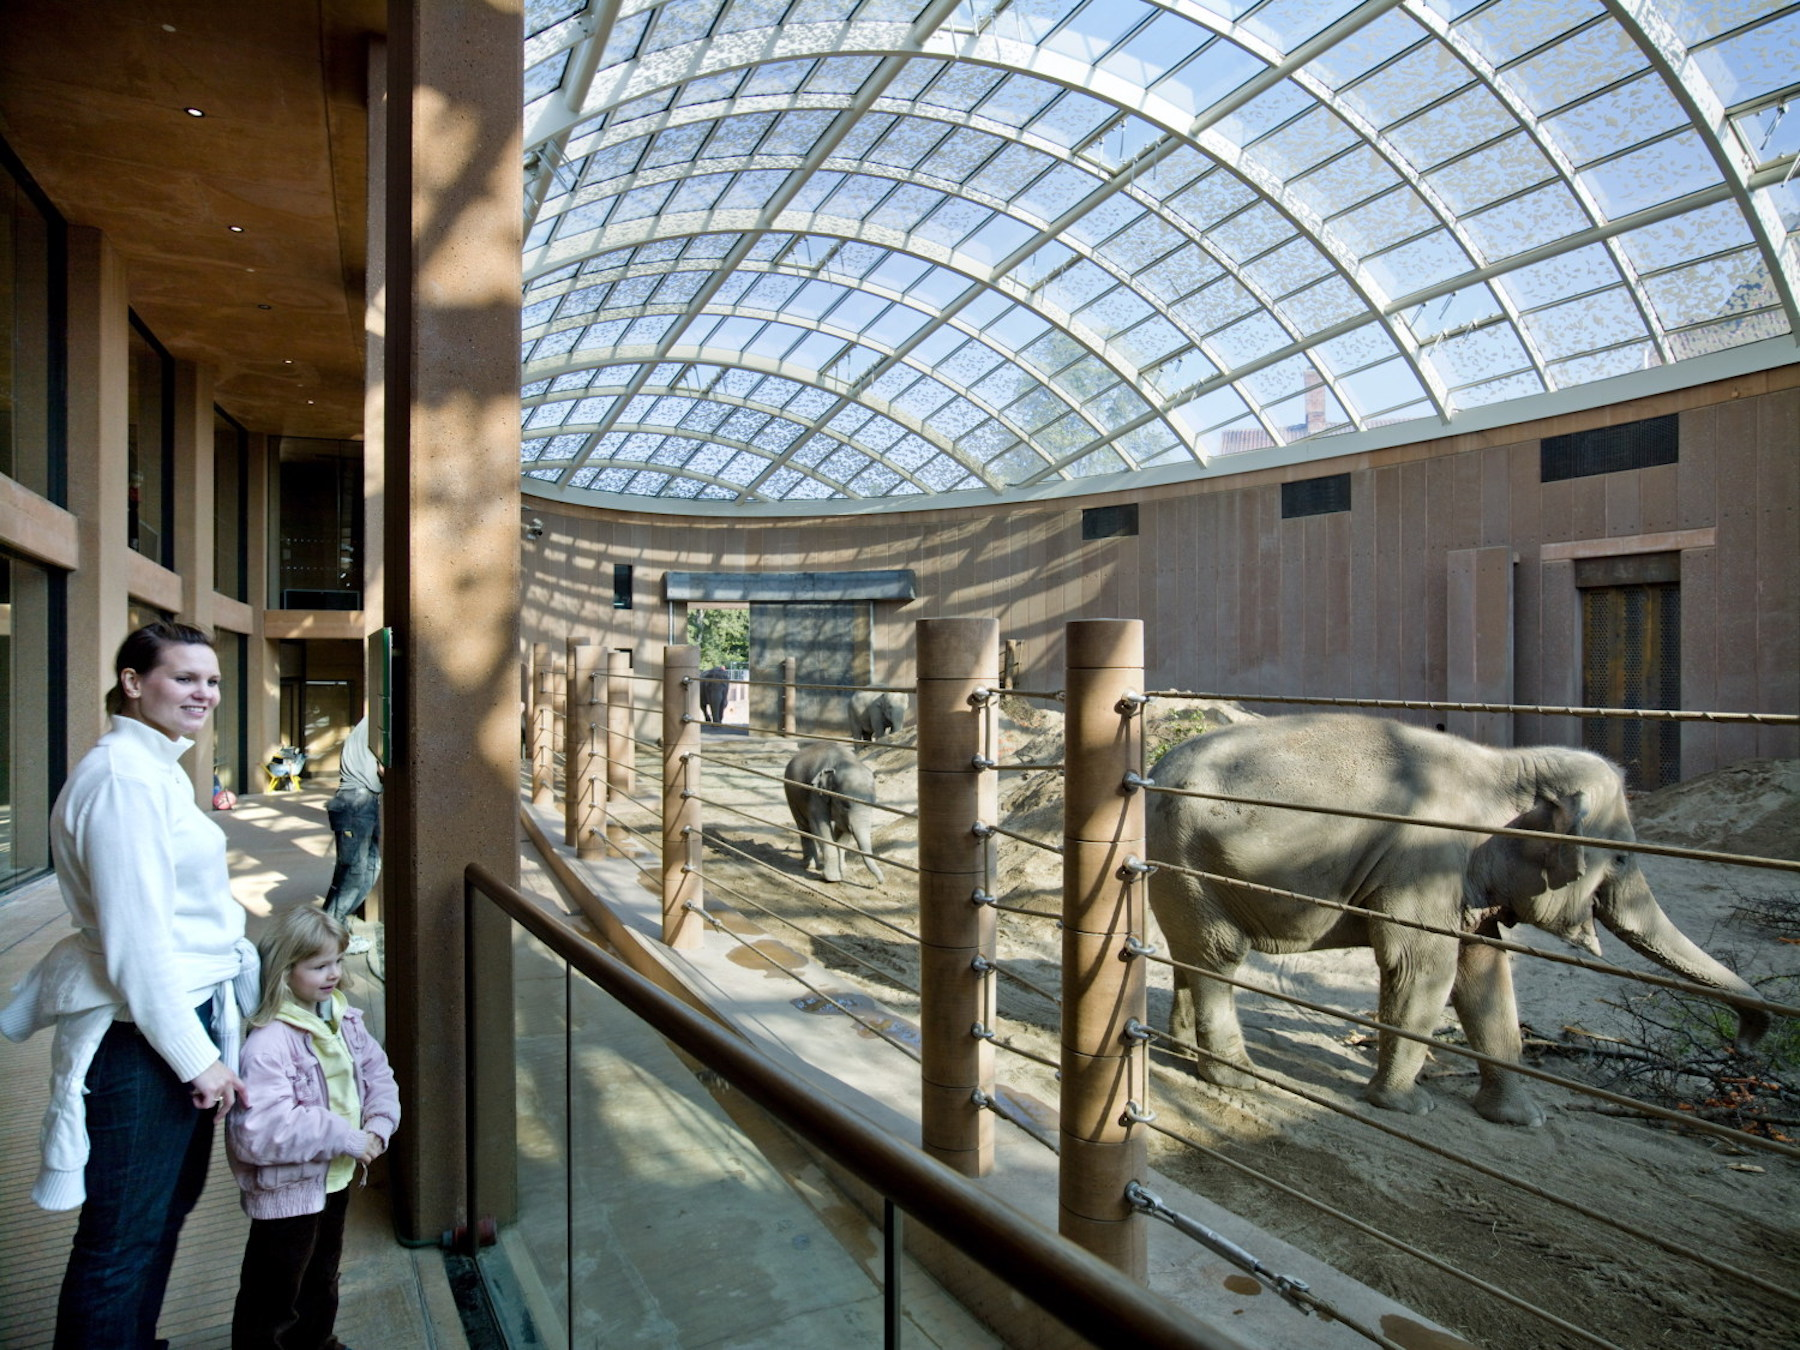 Zoo architecture in the Elephant House by Foster + Partners